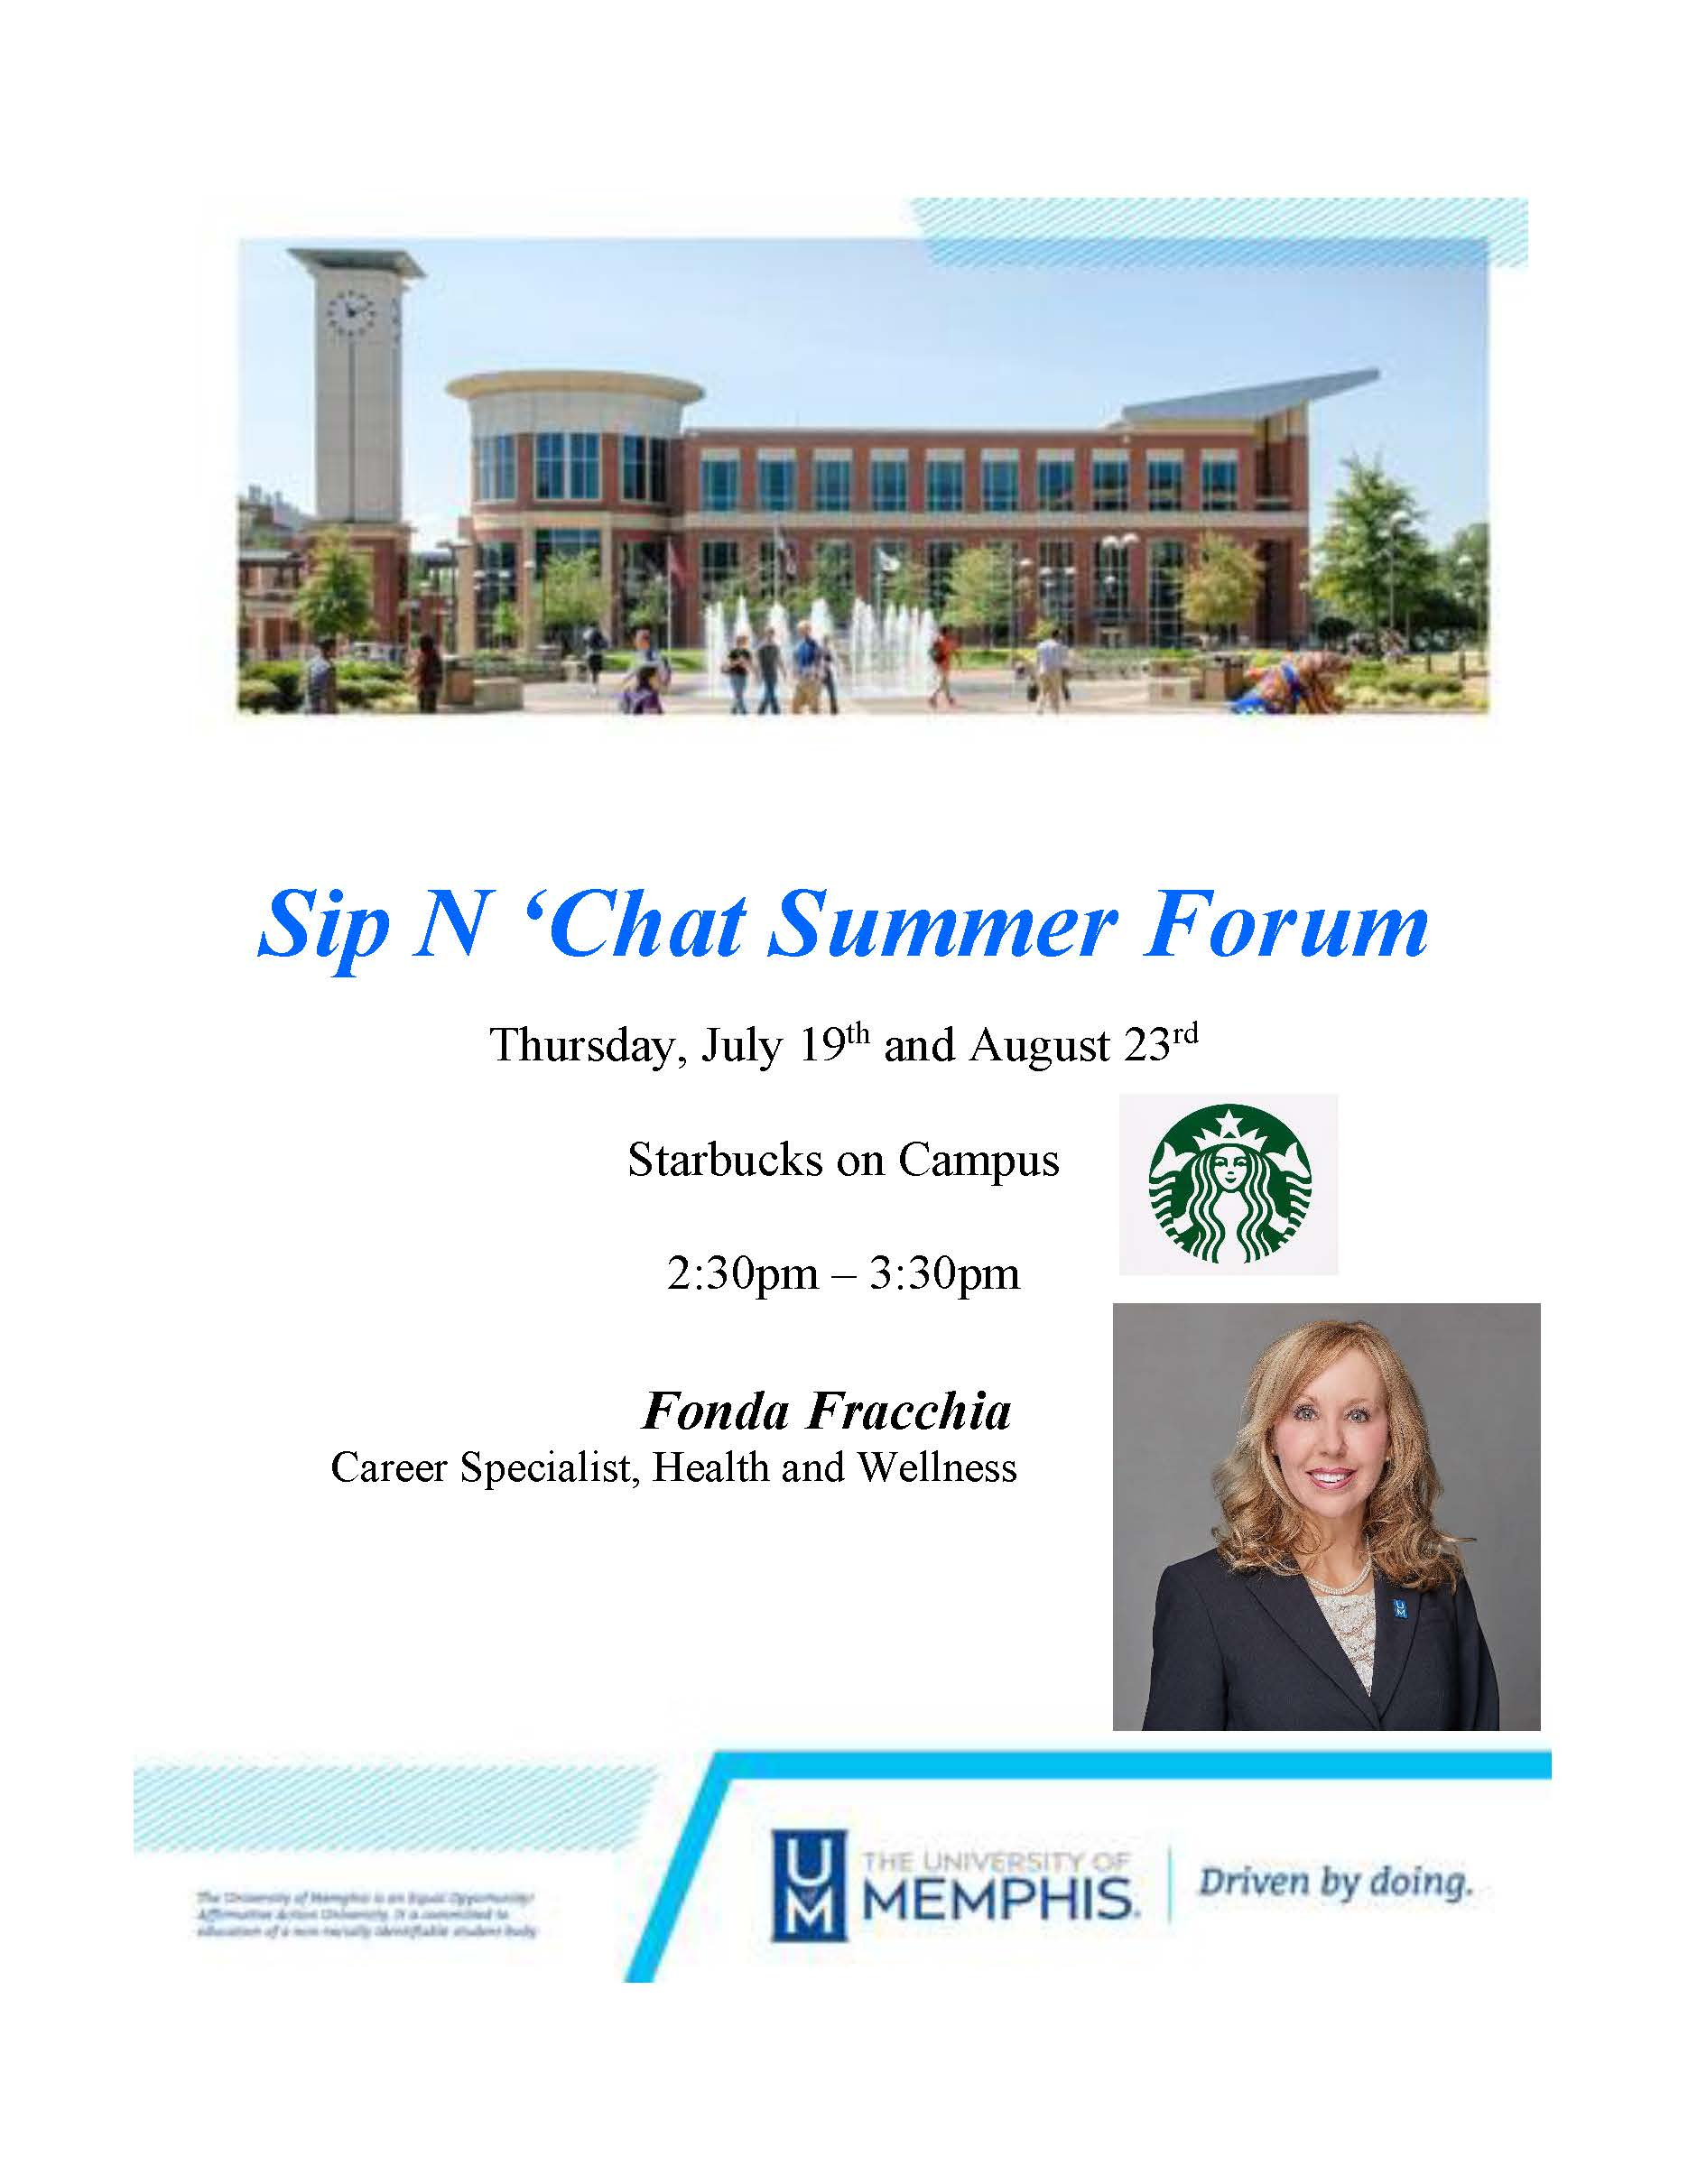 Sip 'N Chat with Career Specialist, Fonda Fracchia, on Thursday, July 19th and August 23rd from 2:30 - 3:30 PM at the campus Starbucks